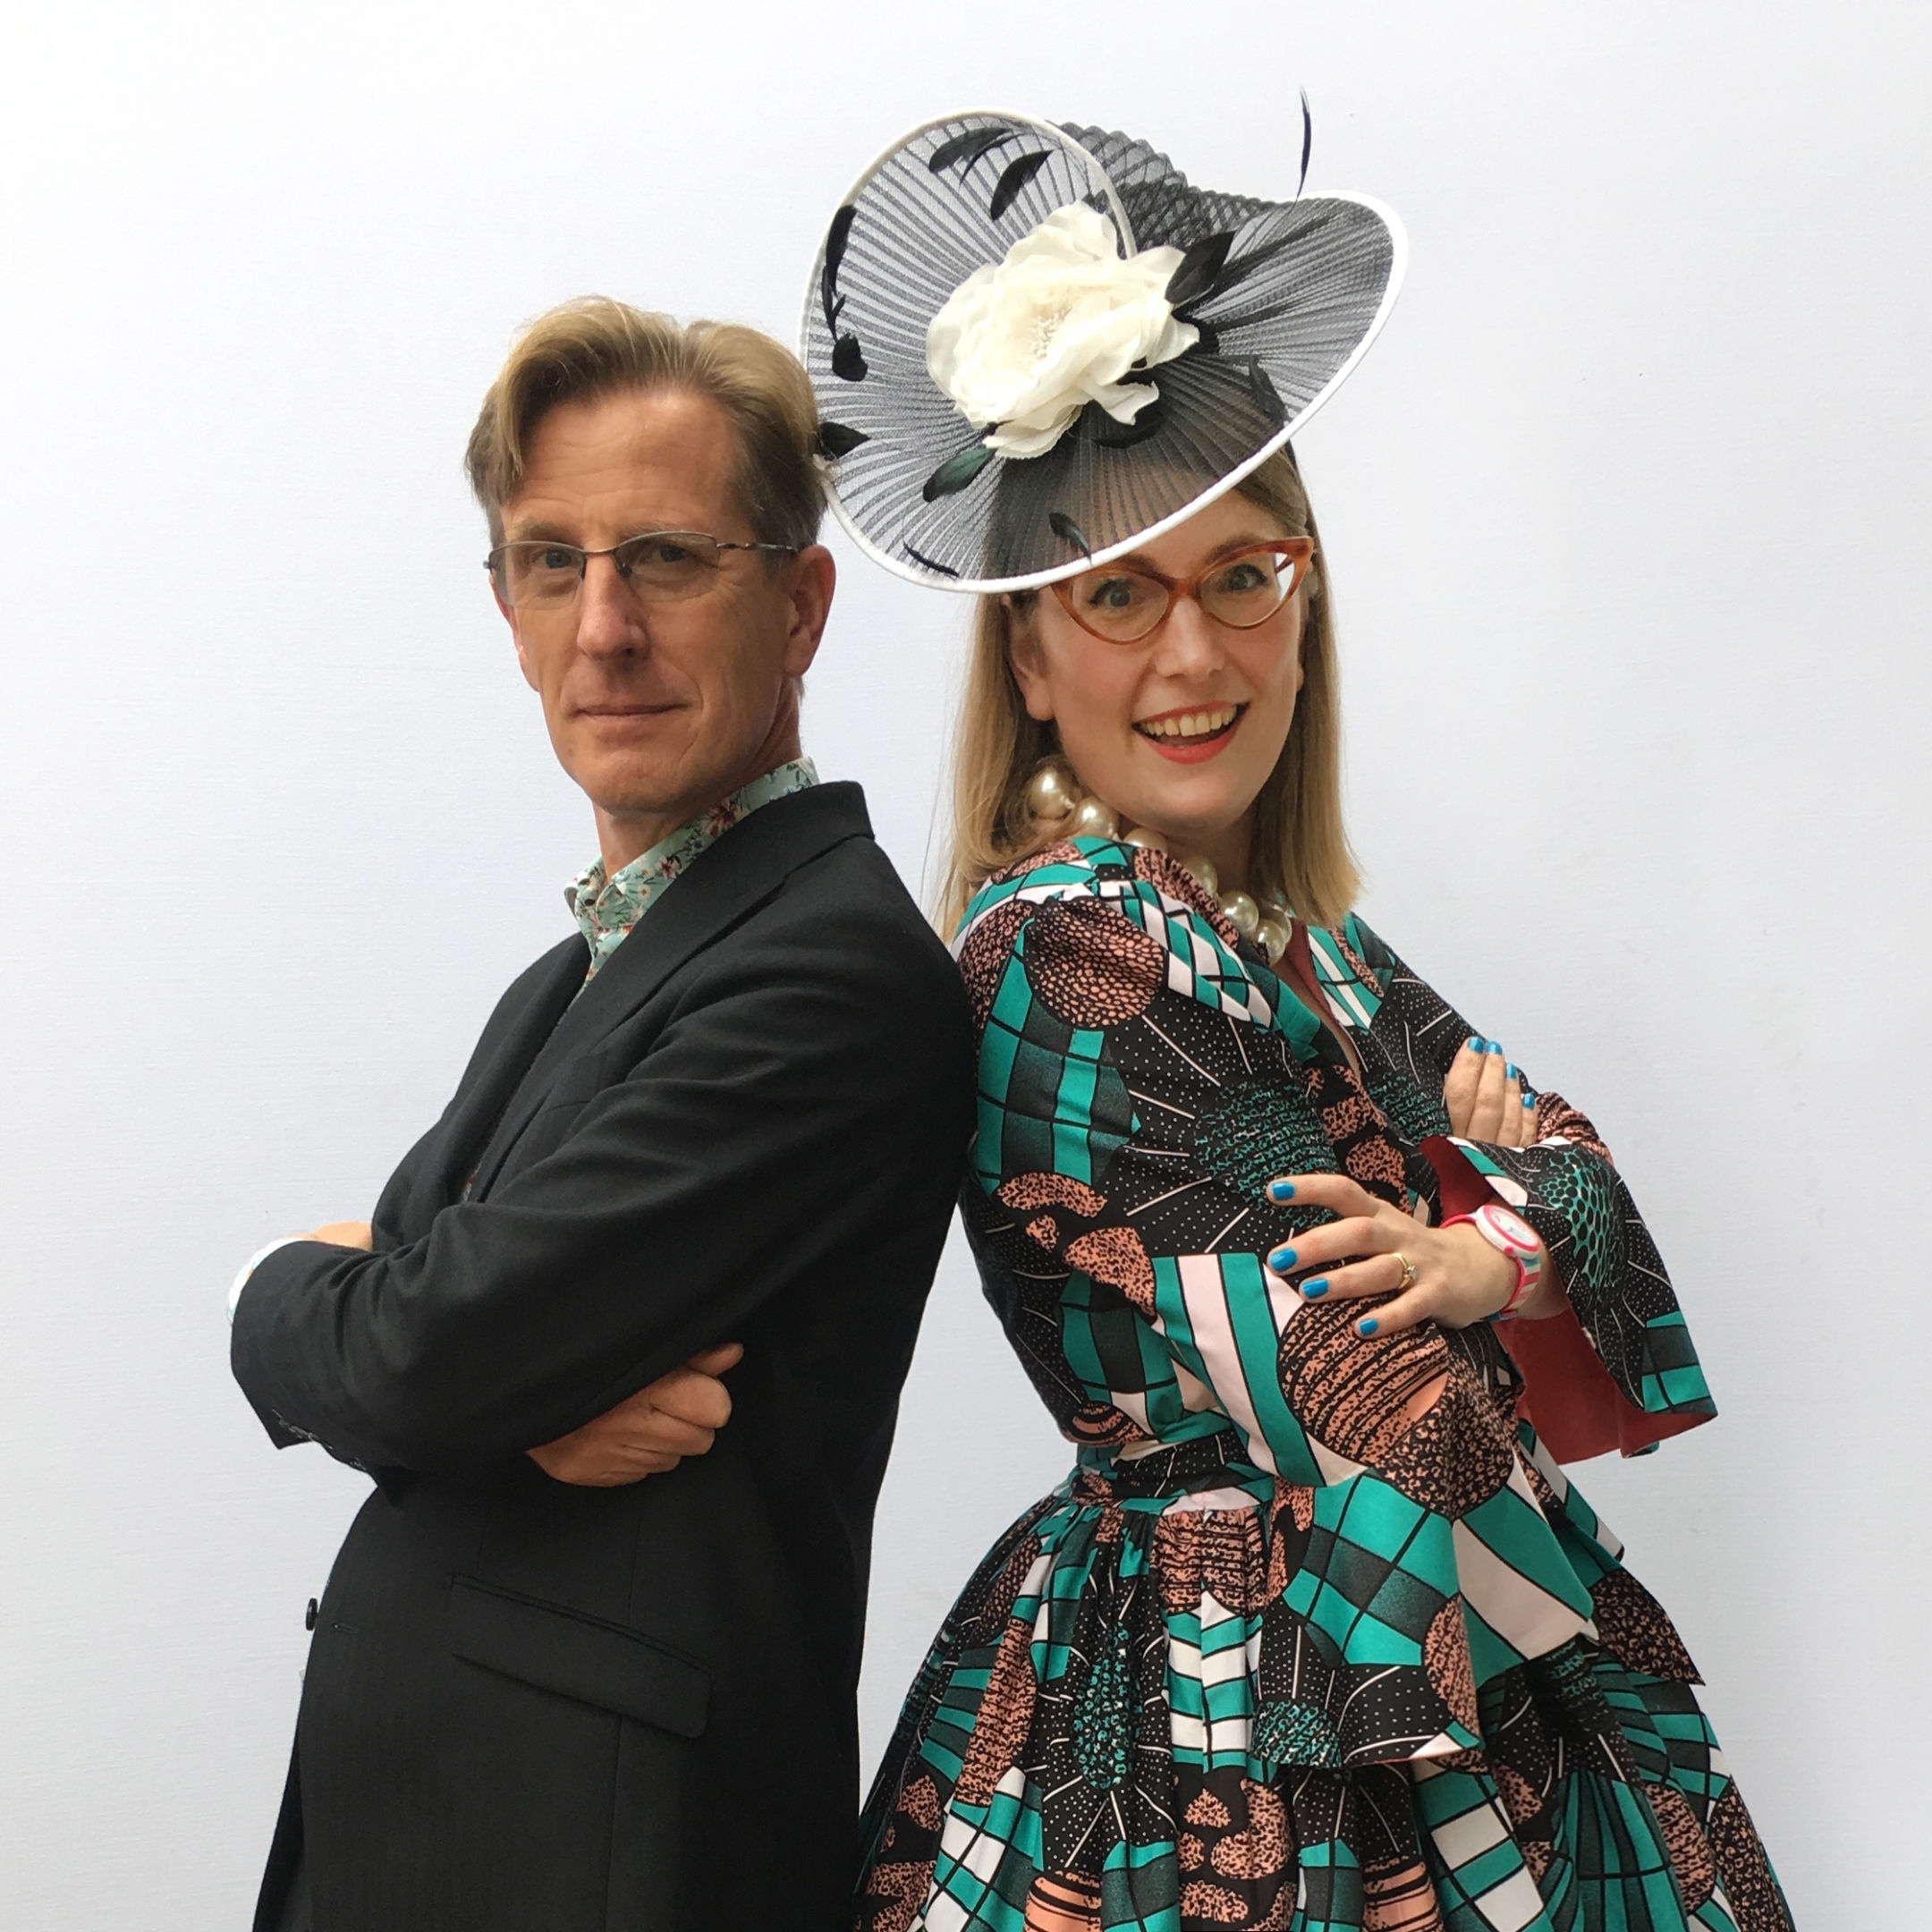 A photo of the authors Philip Reeve and Sarah McIntyre